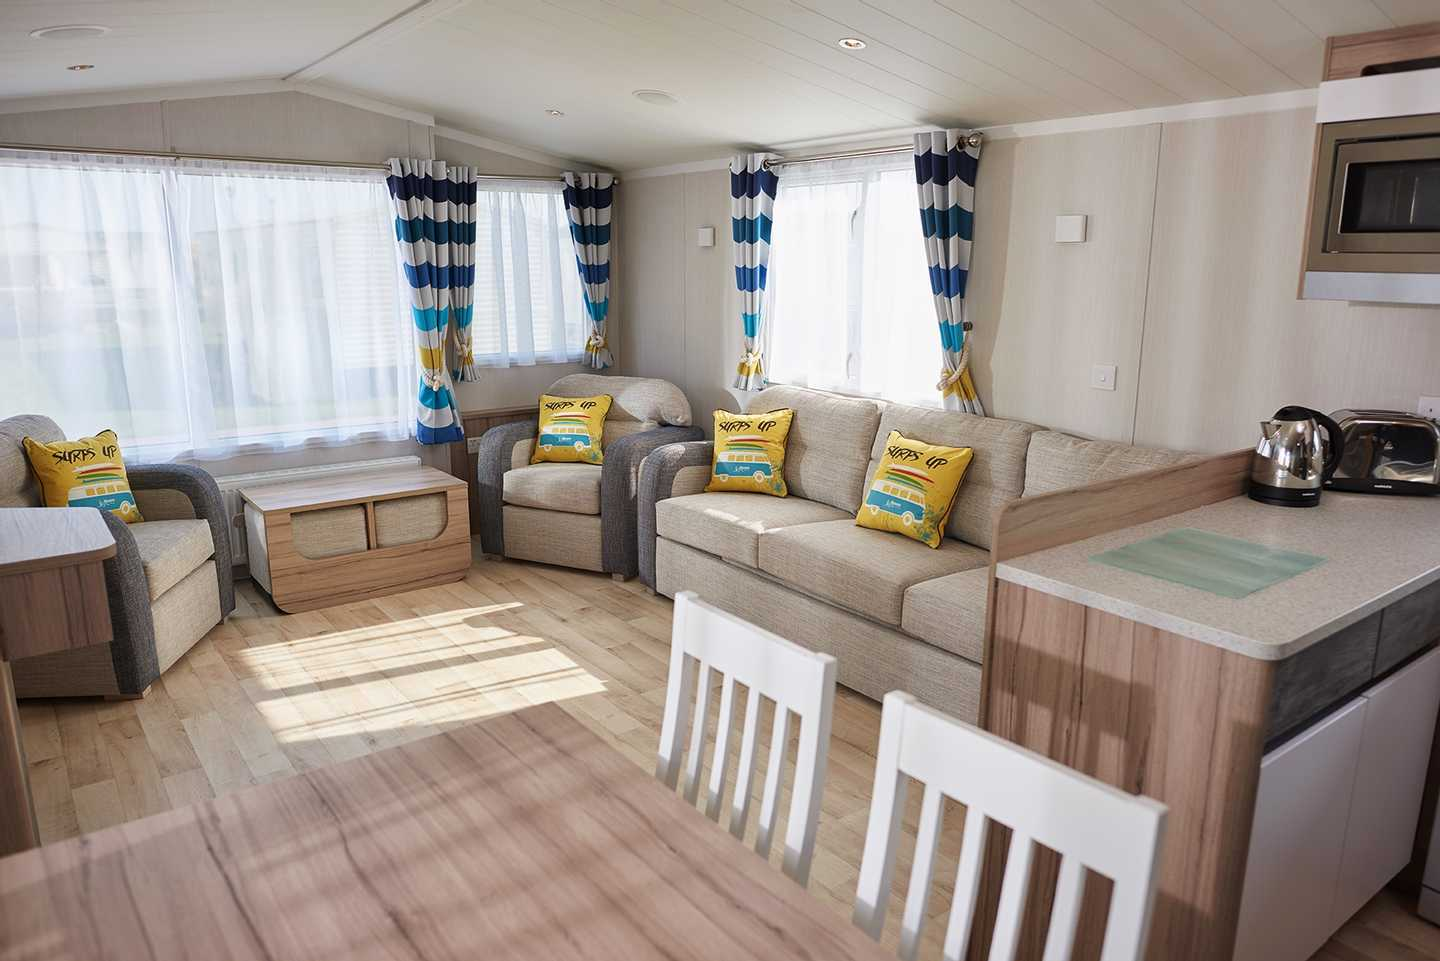 Prestige caravan kitchen and lounge at Caister on Sea